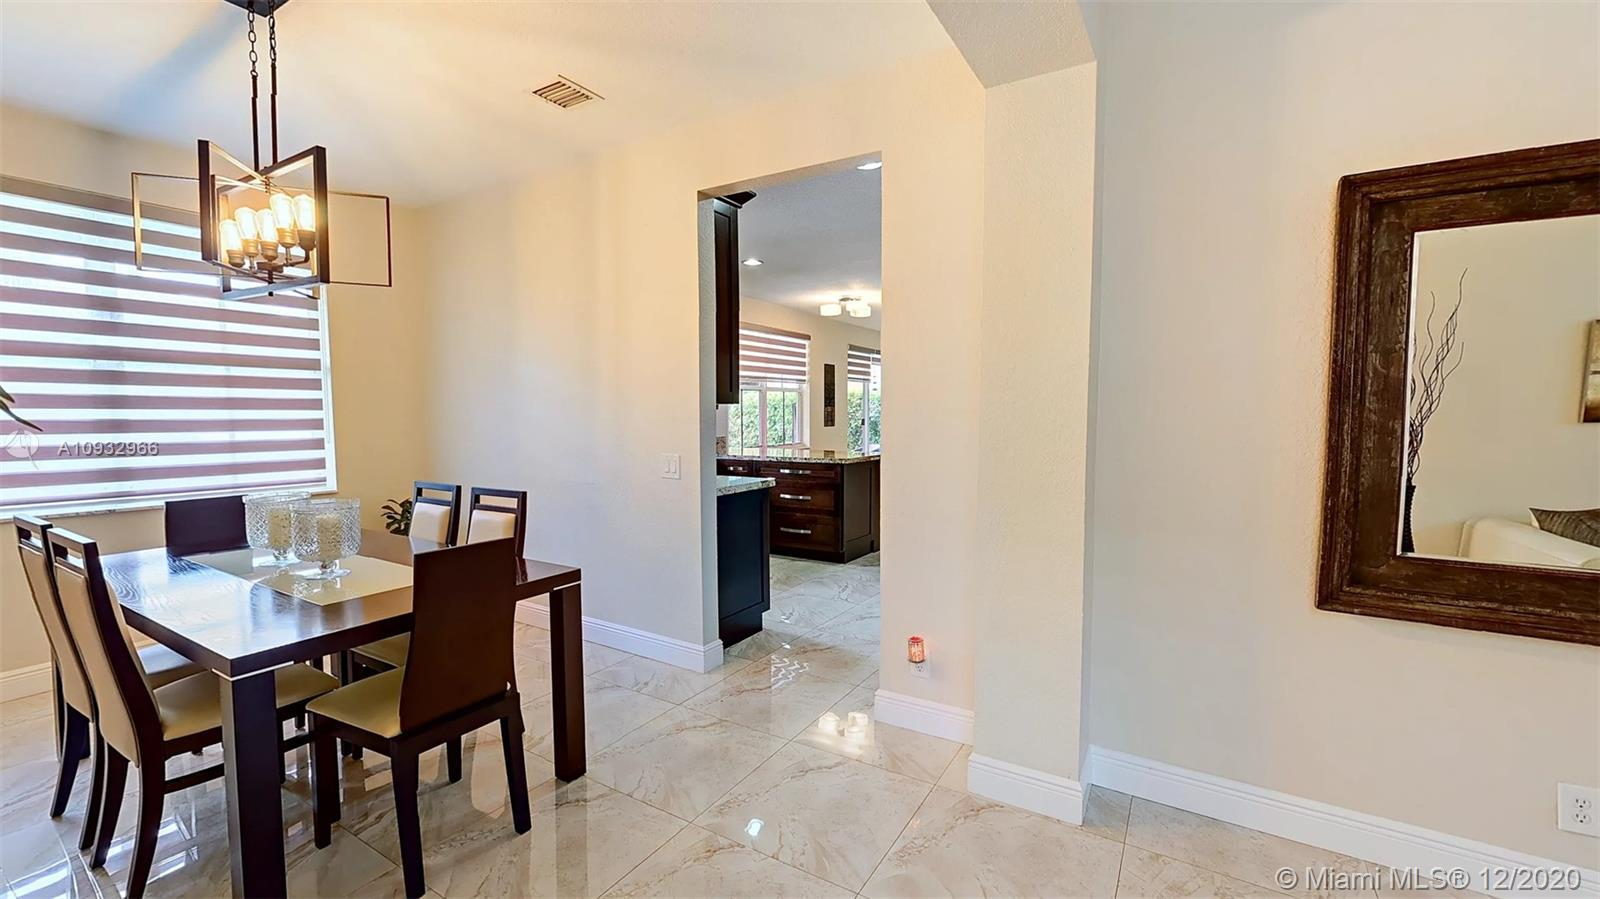 Photo - 977 Tulip Cir, Weston FL 33327